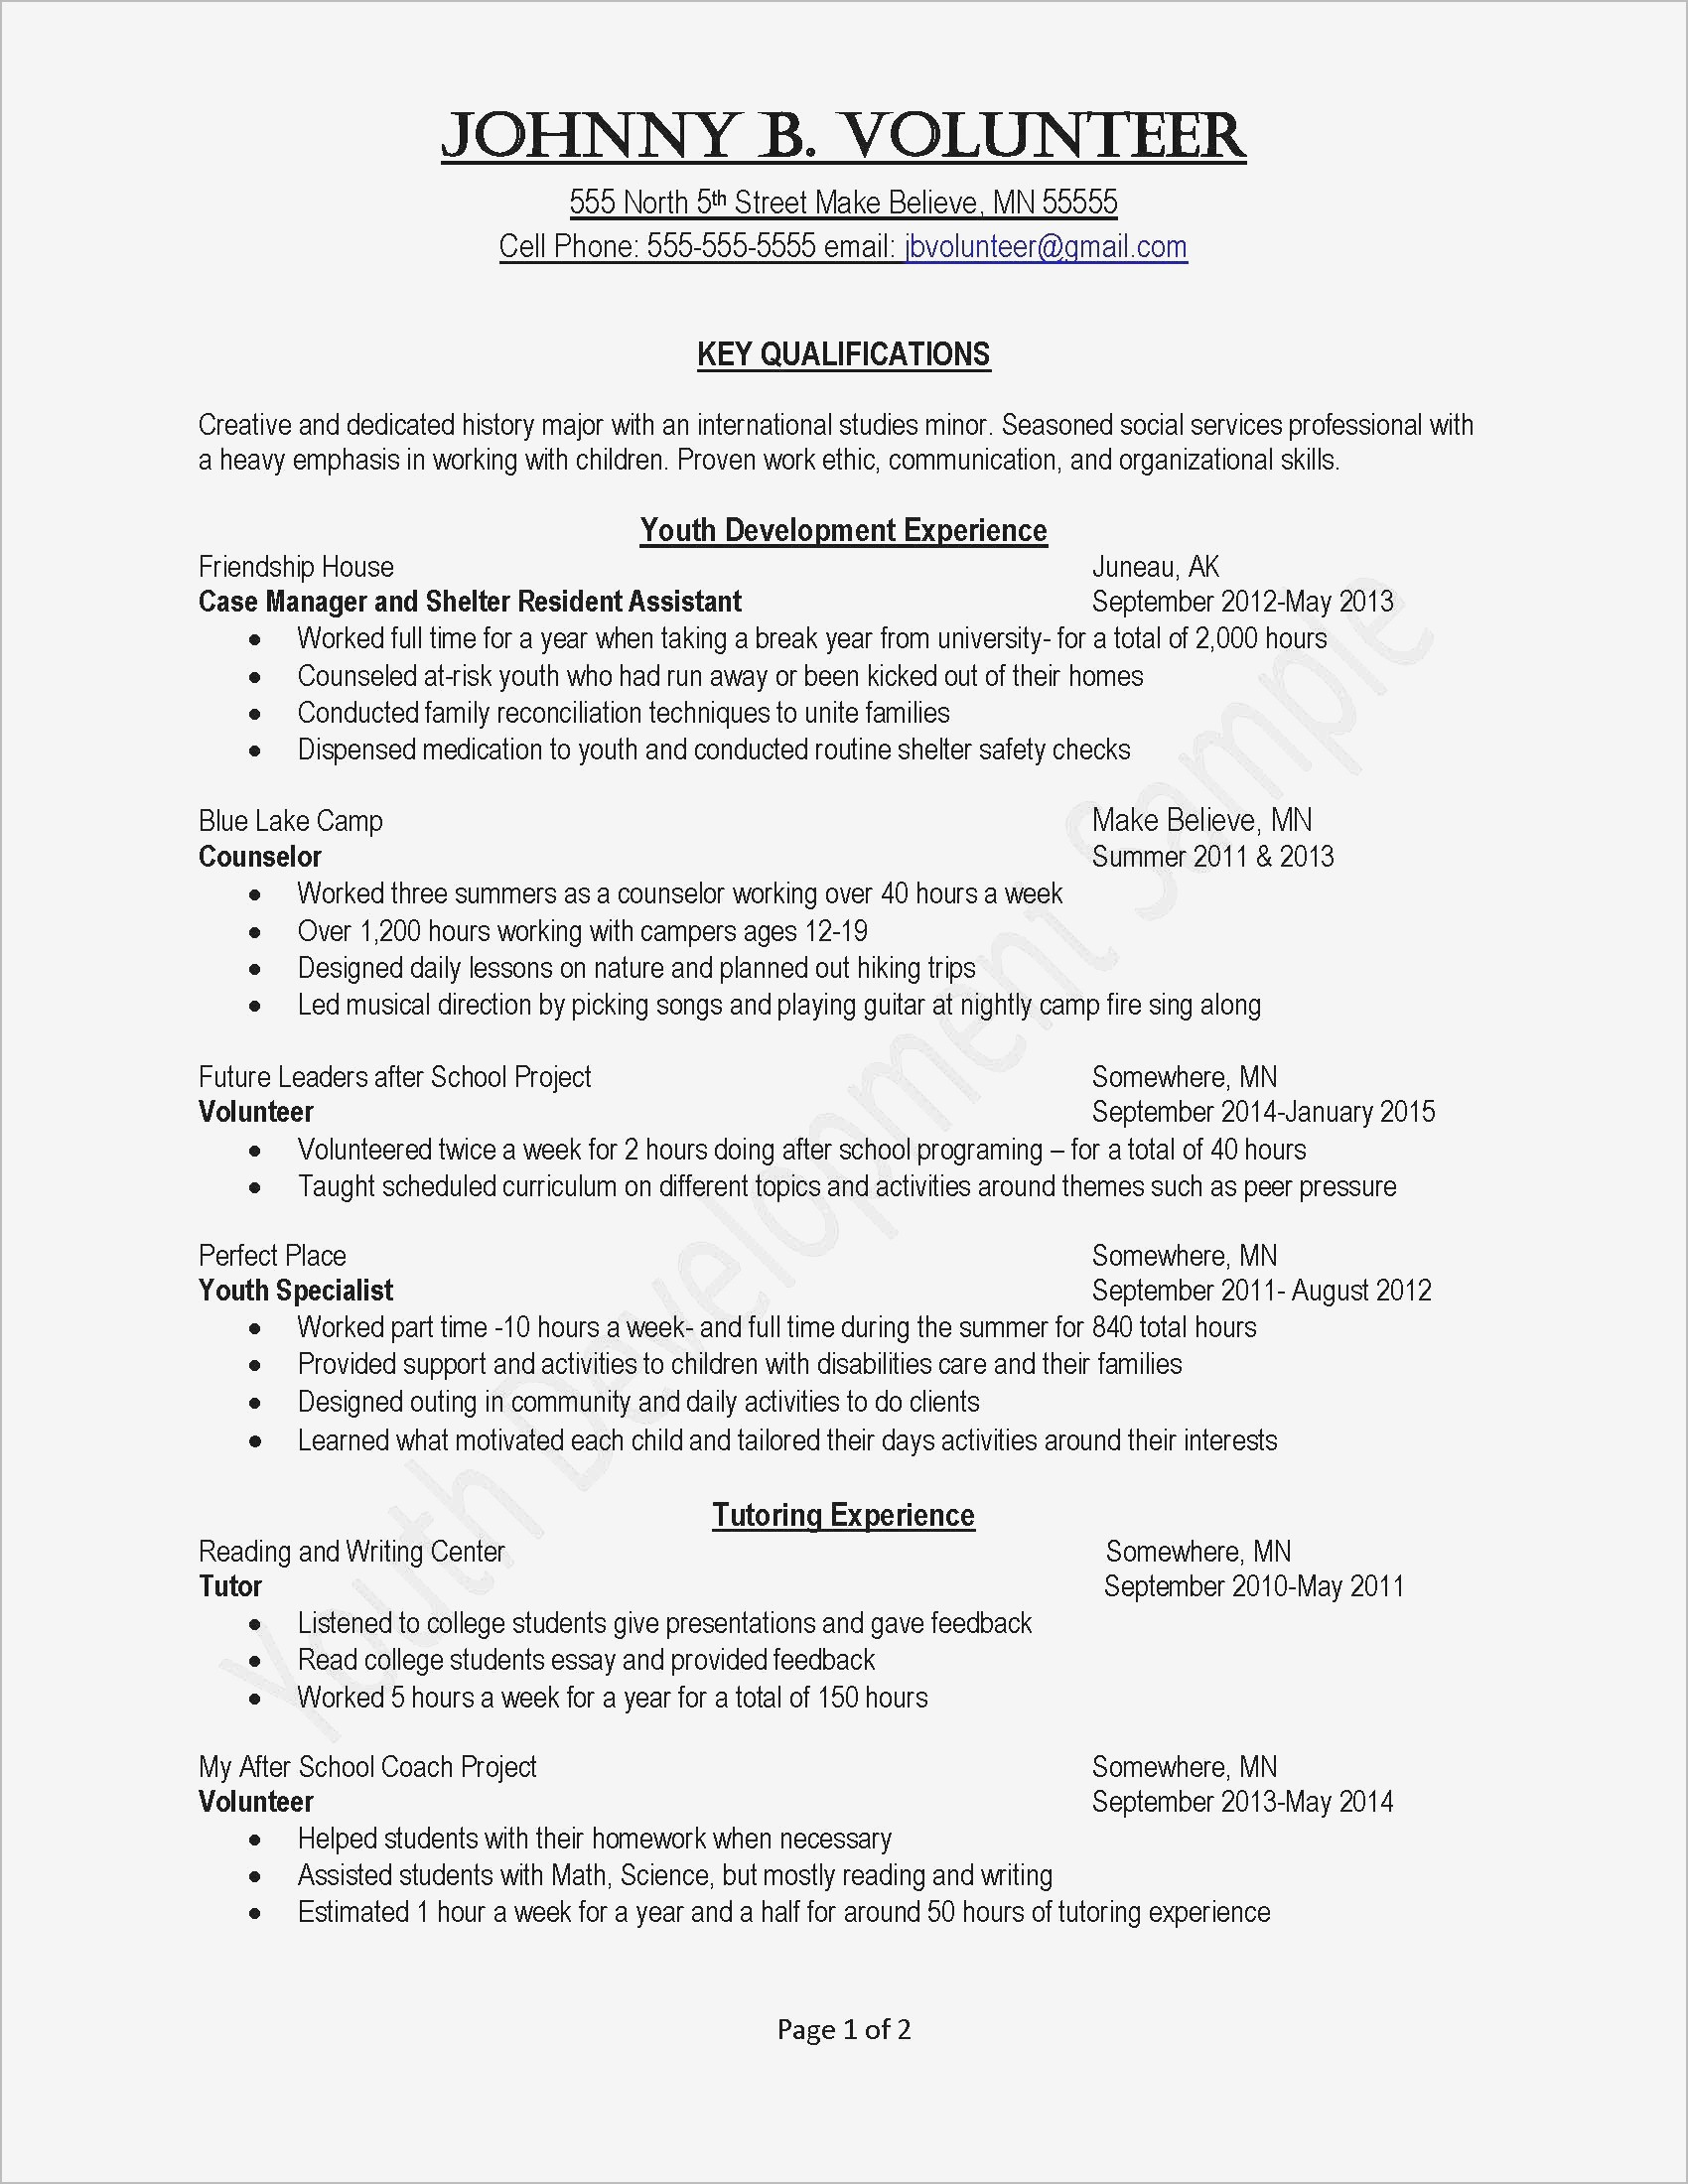 cover letter template word doc Collection-Resume Templates Word 2013 Cover Letter Template Modern Copy Od Consultant Cover Letter Web 4-i